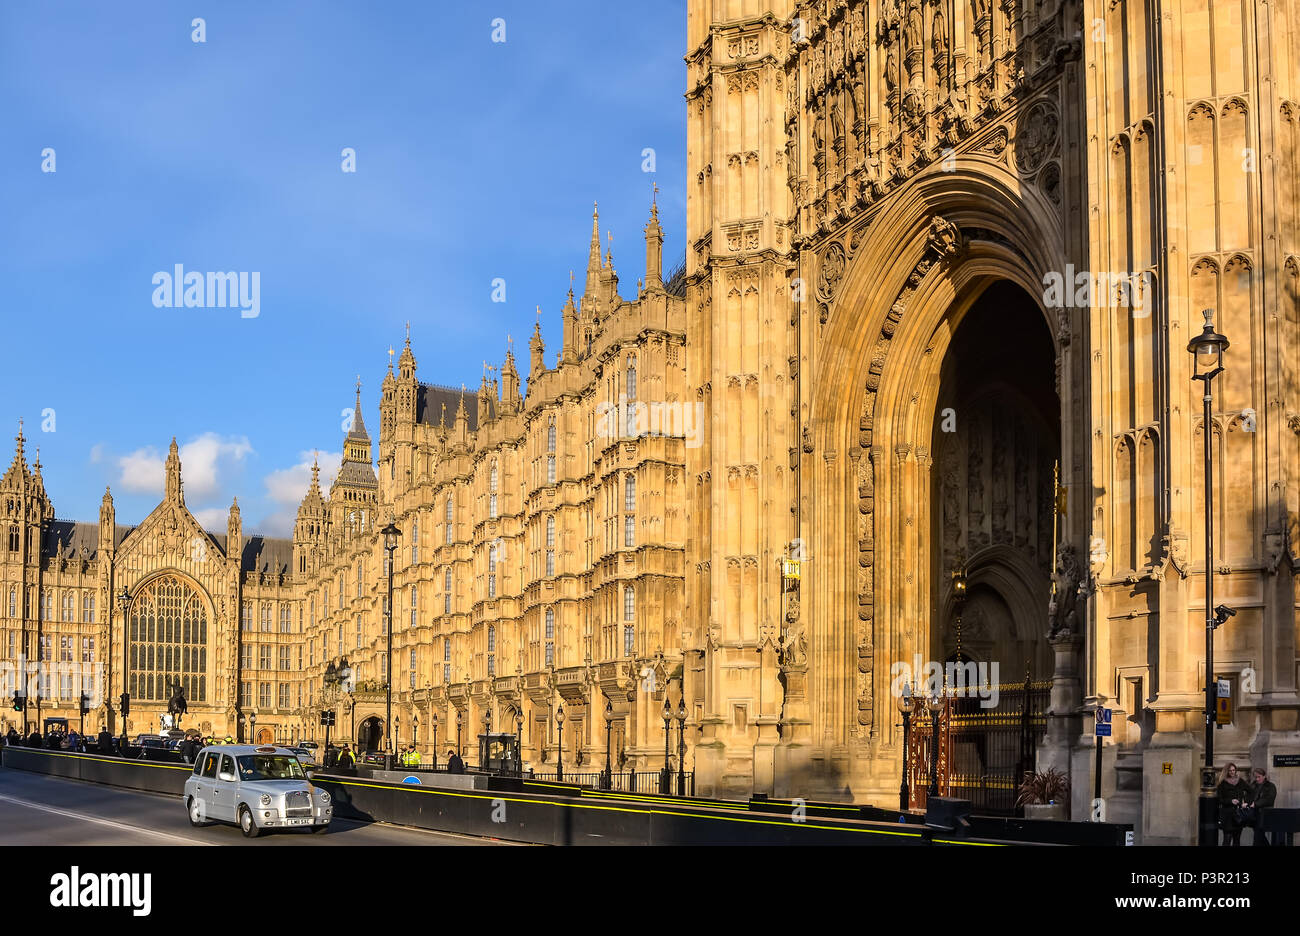 Old Palace Yard and the Gothic Revival style Palace of Westminster, with the statue of Richard Coeur de Lion, silver British cab and The Sovereign's E - Stock Image